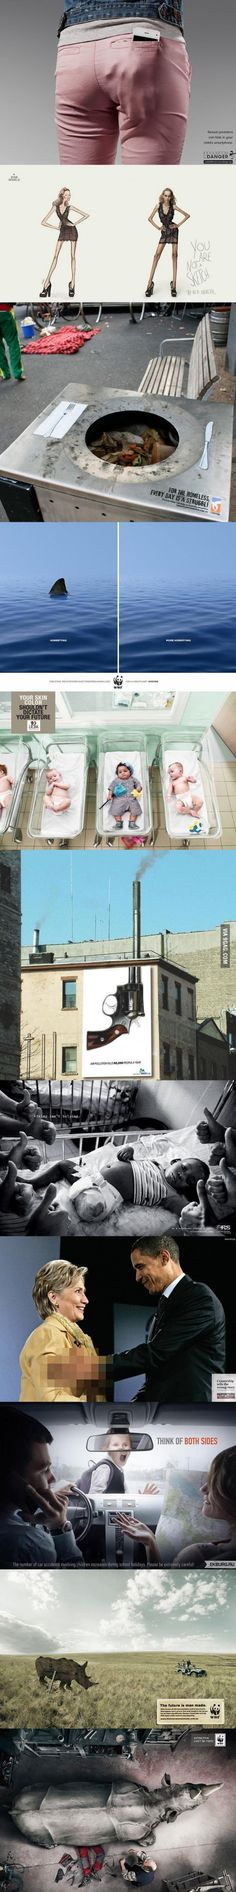 11 Brilliant Advertisements. Calgary marketing agency www.arcreactions.com